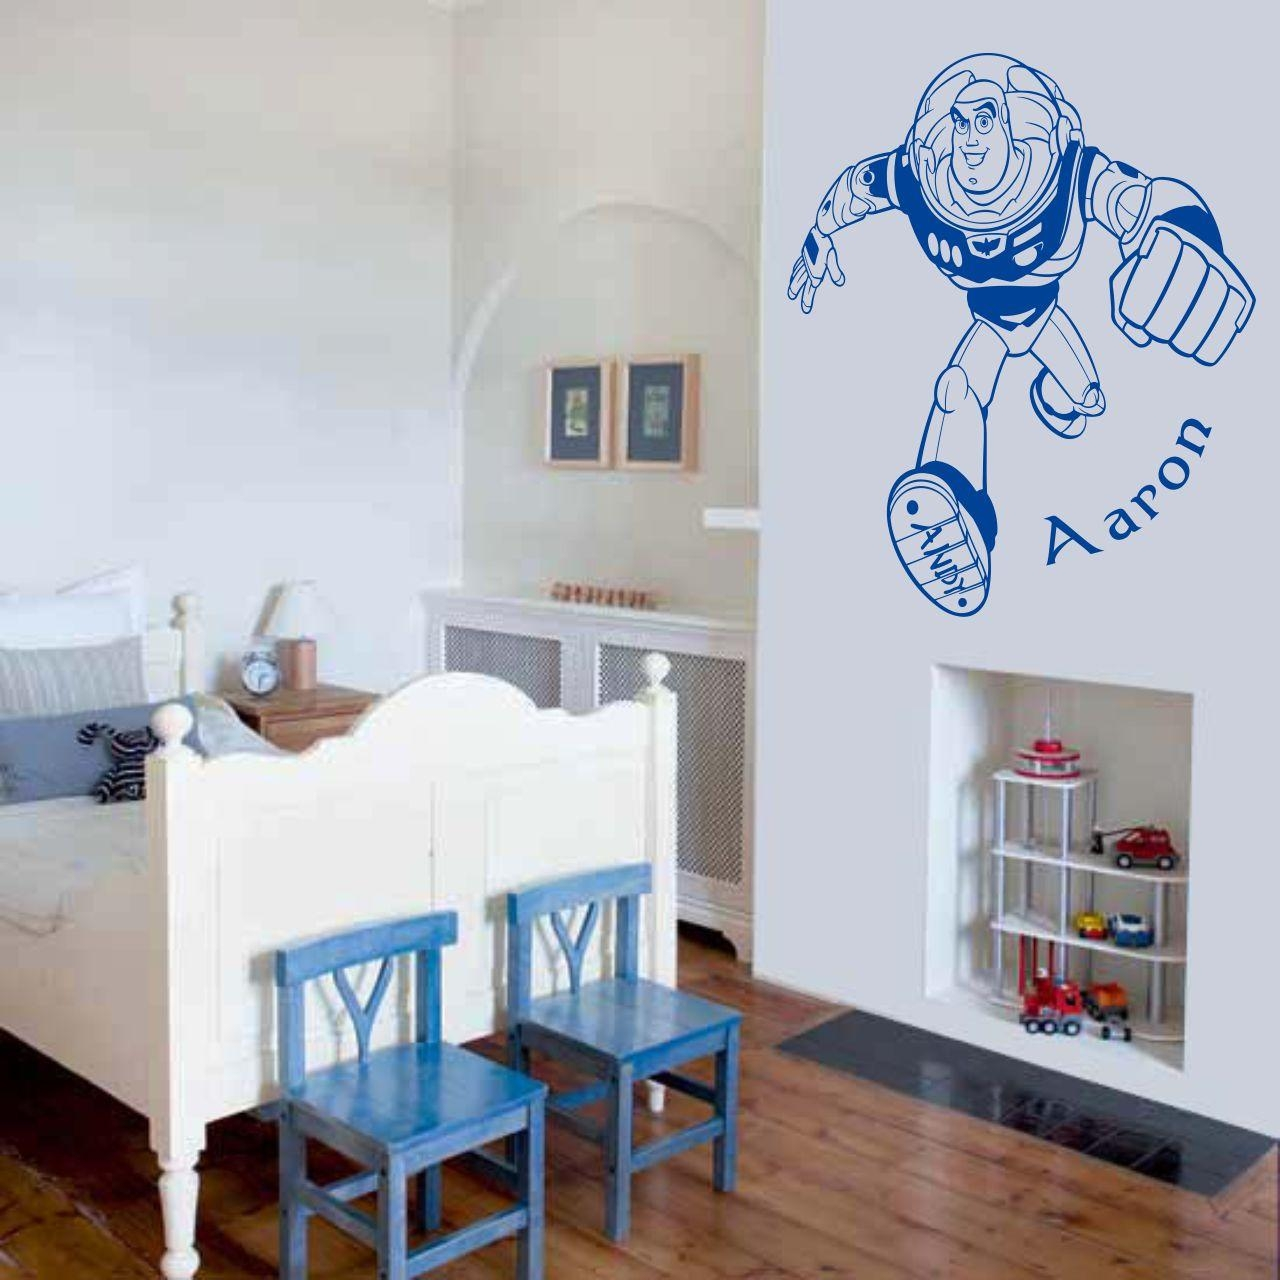 Toy Story Buzz Lightyear Wall Art Decal Vinyl Sticker Wall Pertaining To Toy Story Wall Stickers (Image 20 of 20)